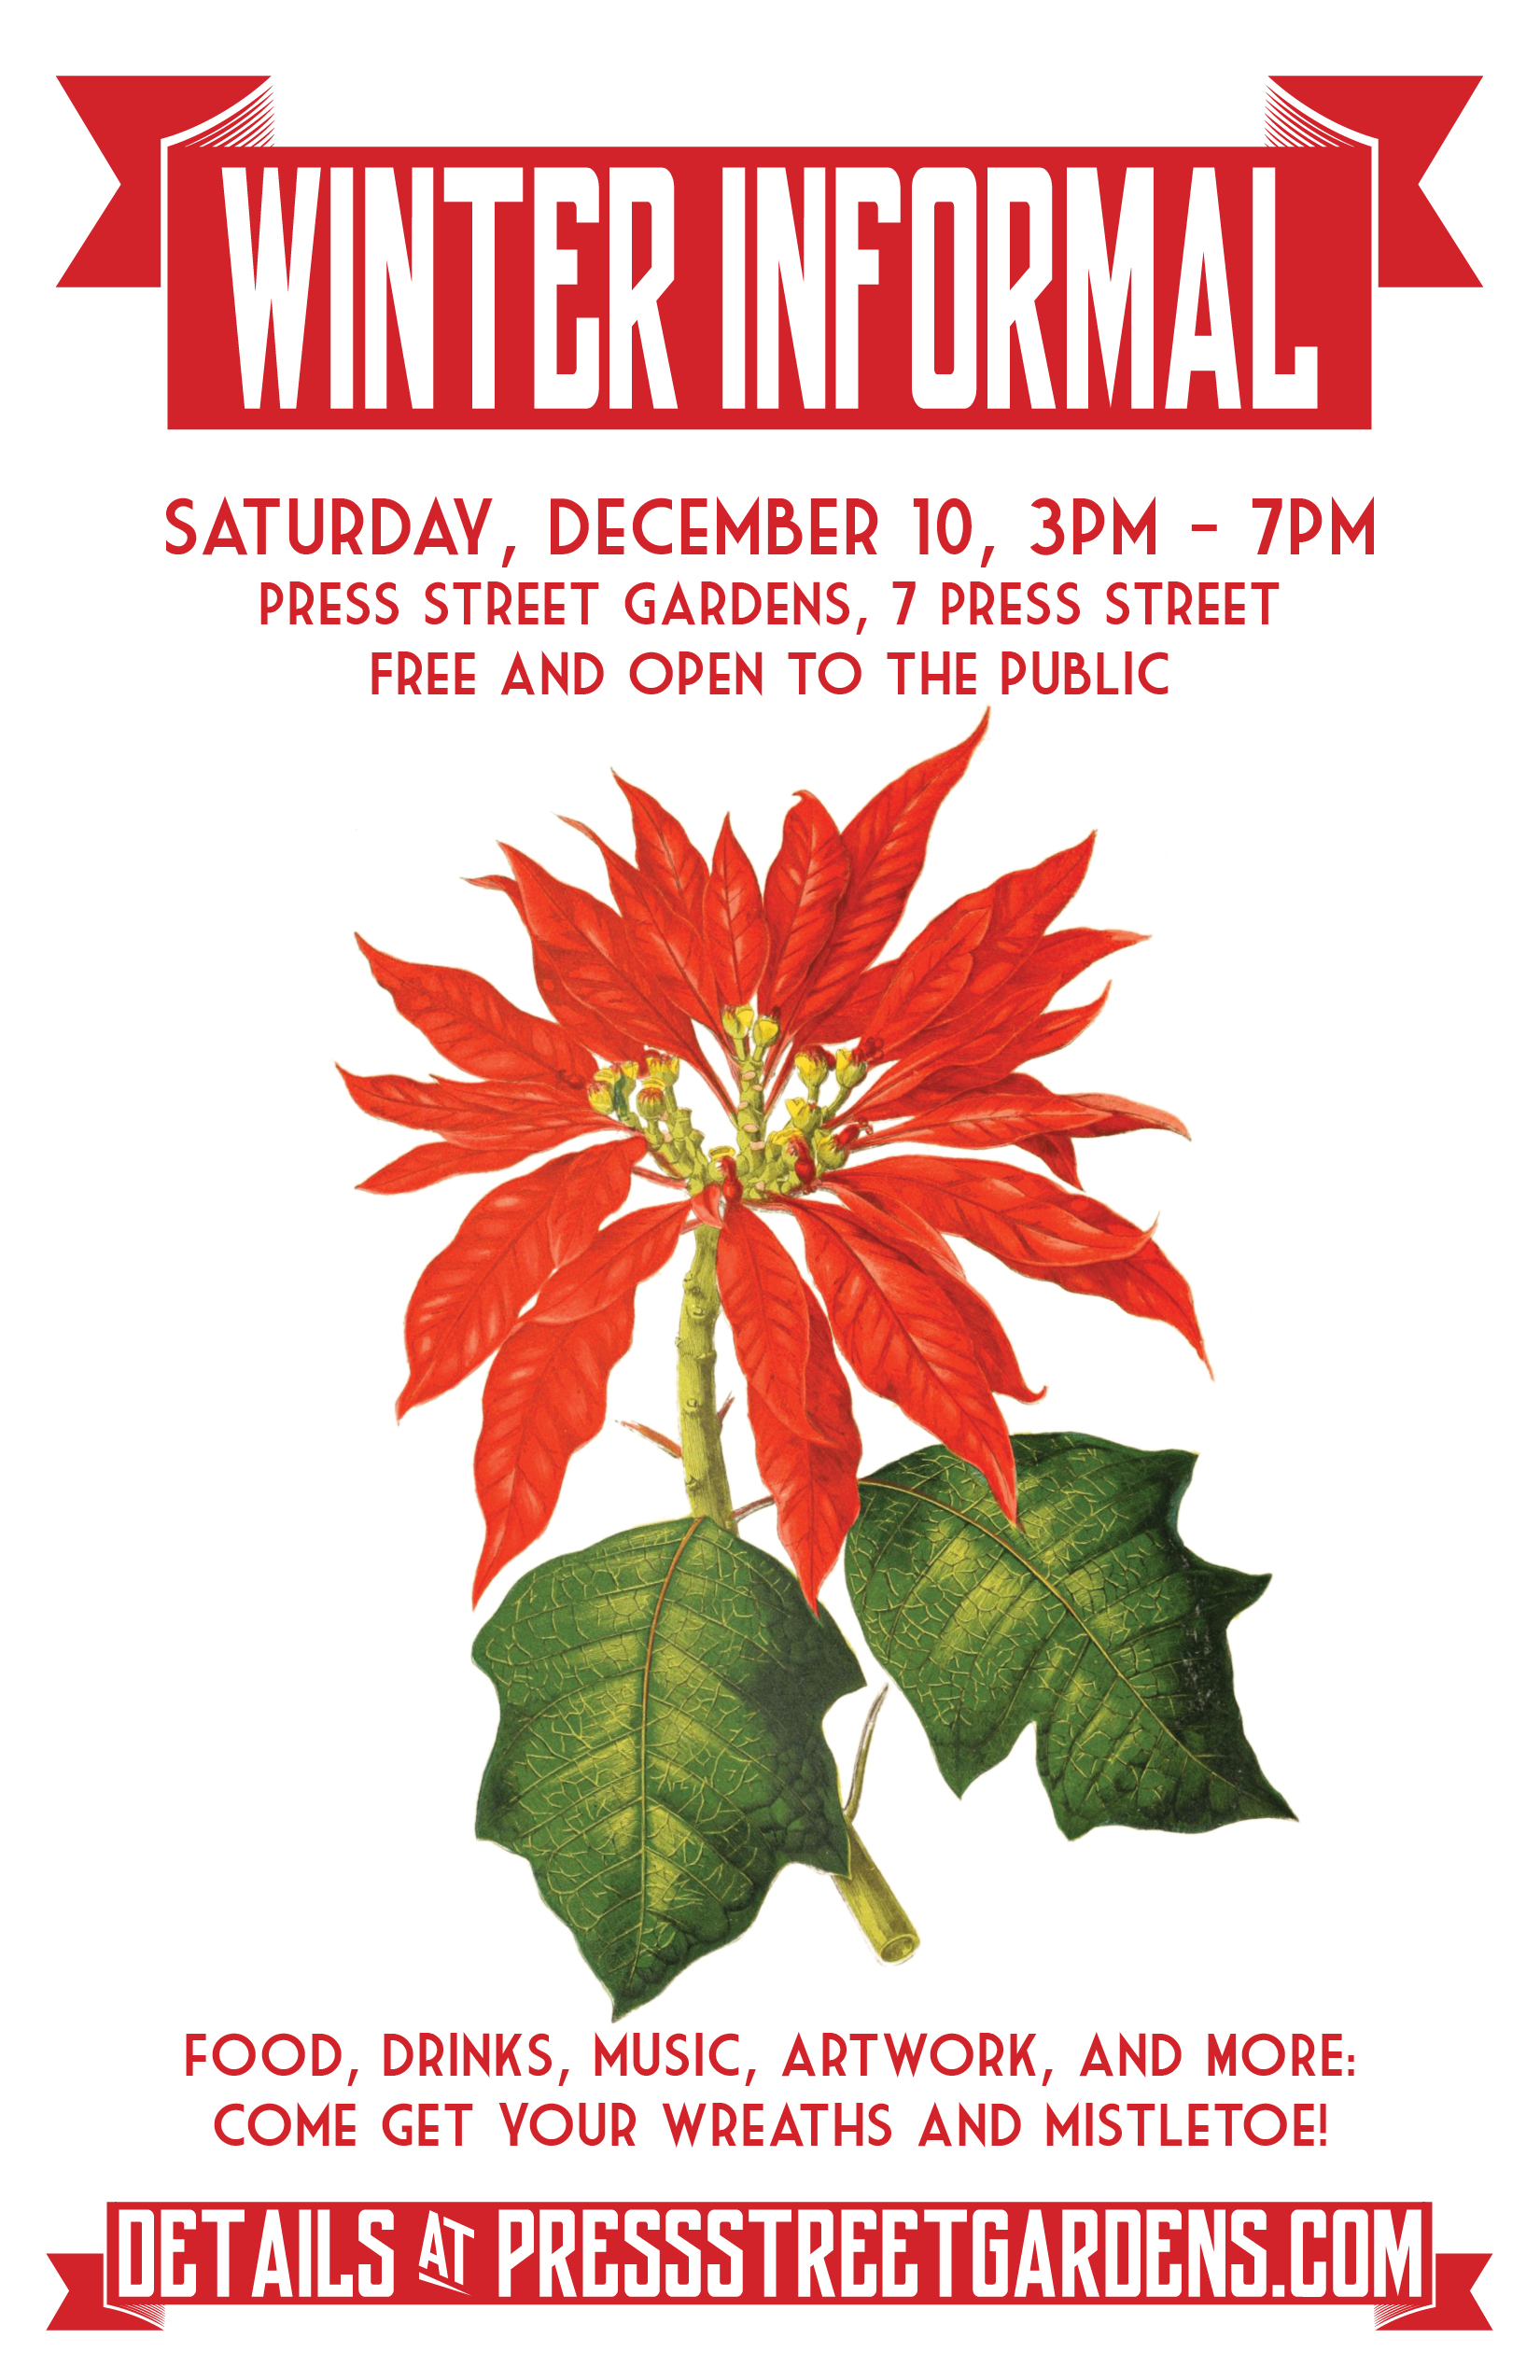 Saturday, December 10: Press Street Gardens' Winter Informal